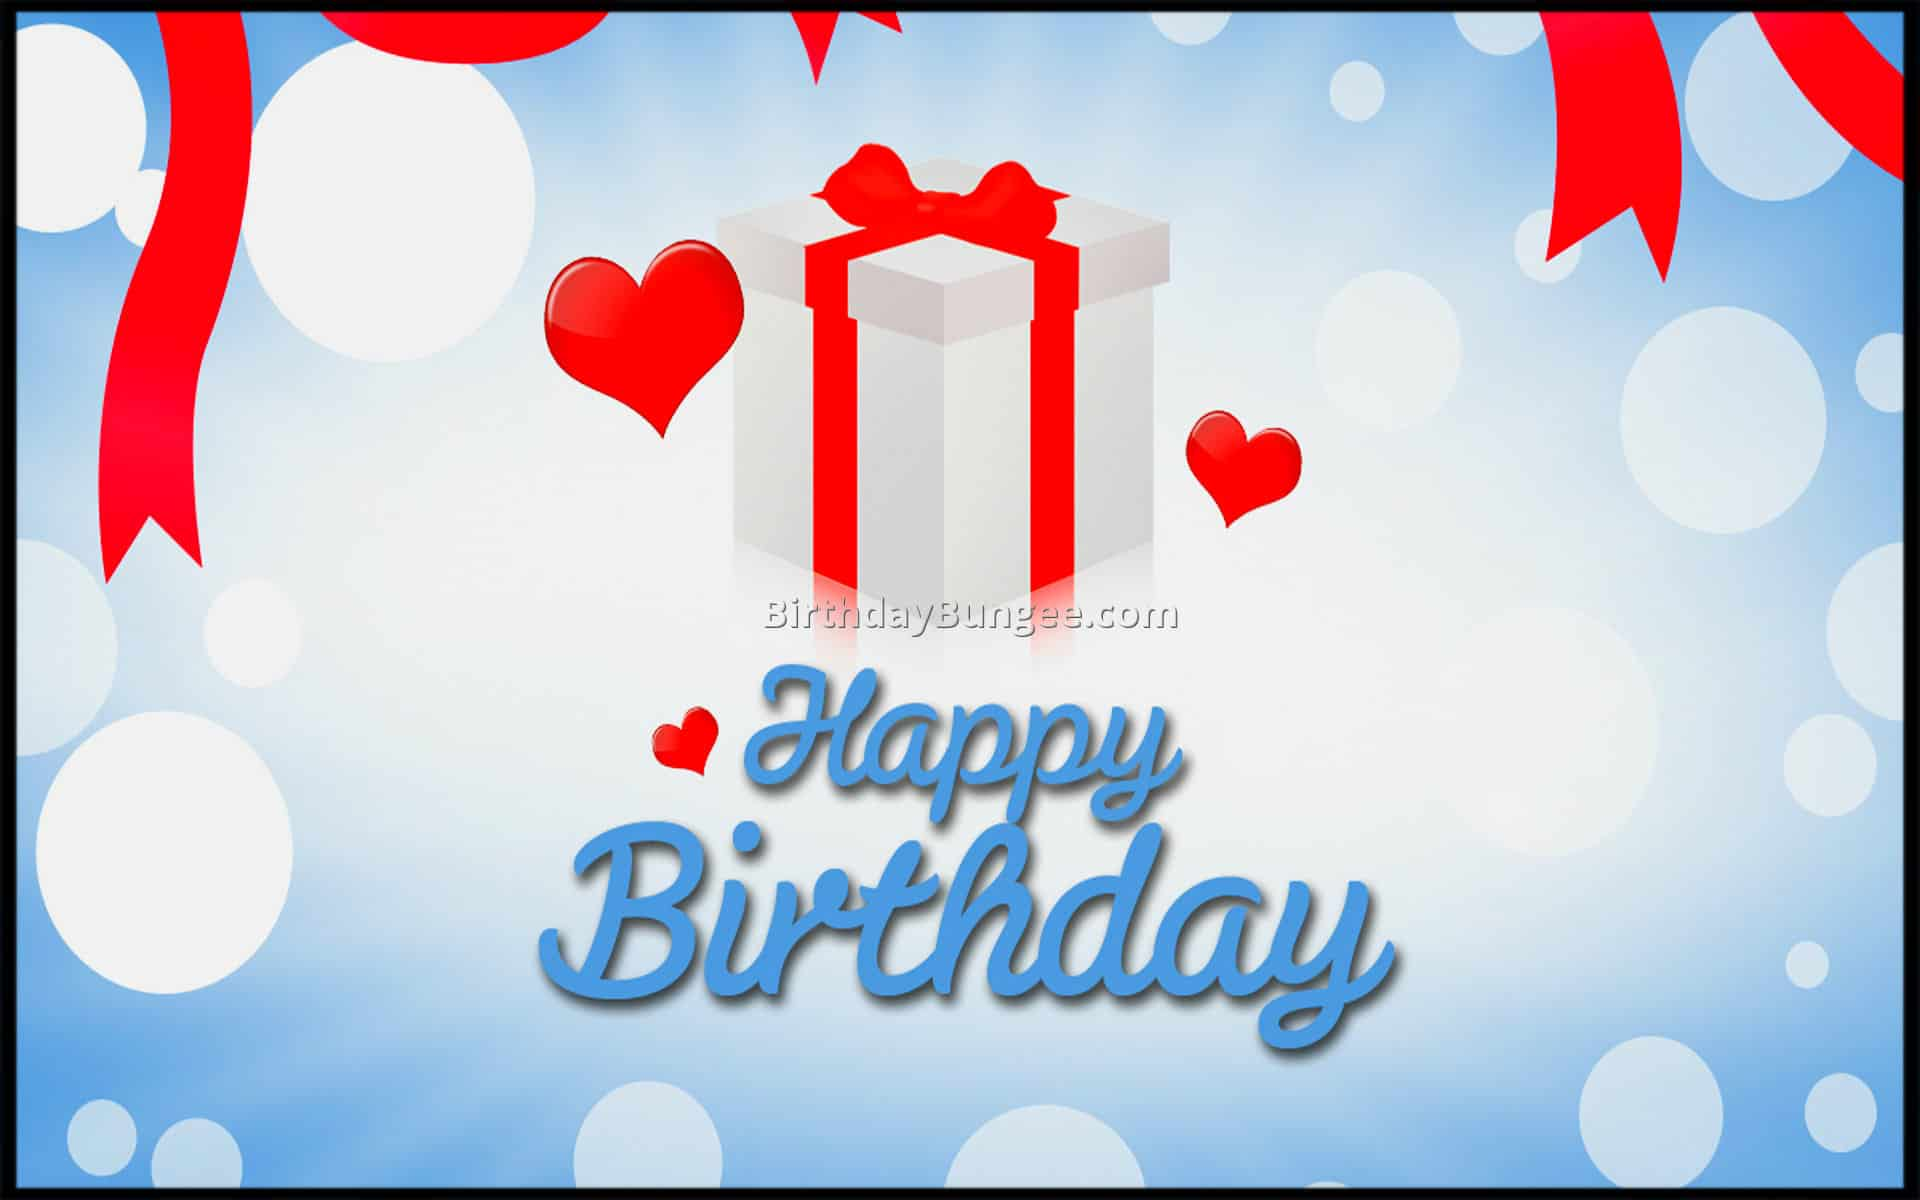 Love Birthday Wallpapers Backgrounds : 50 Happy Birthday Images For Him With Quotes - iLove Messages